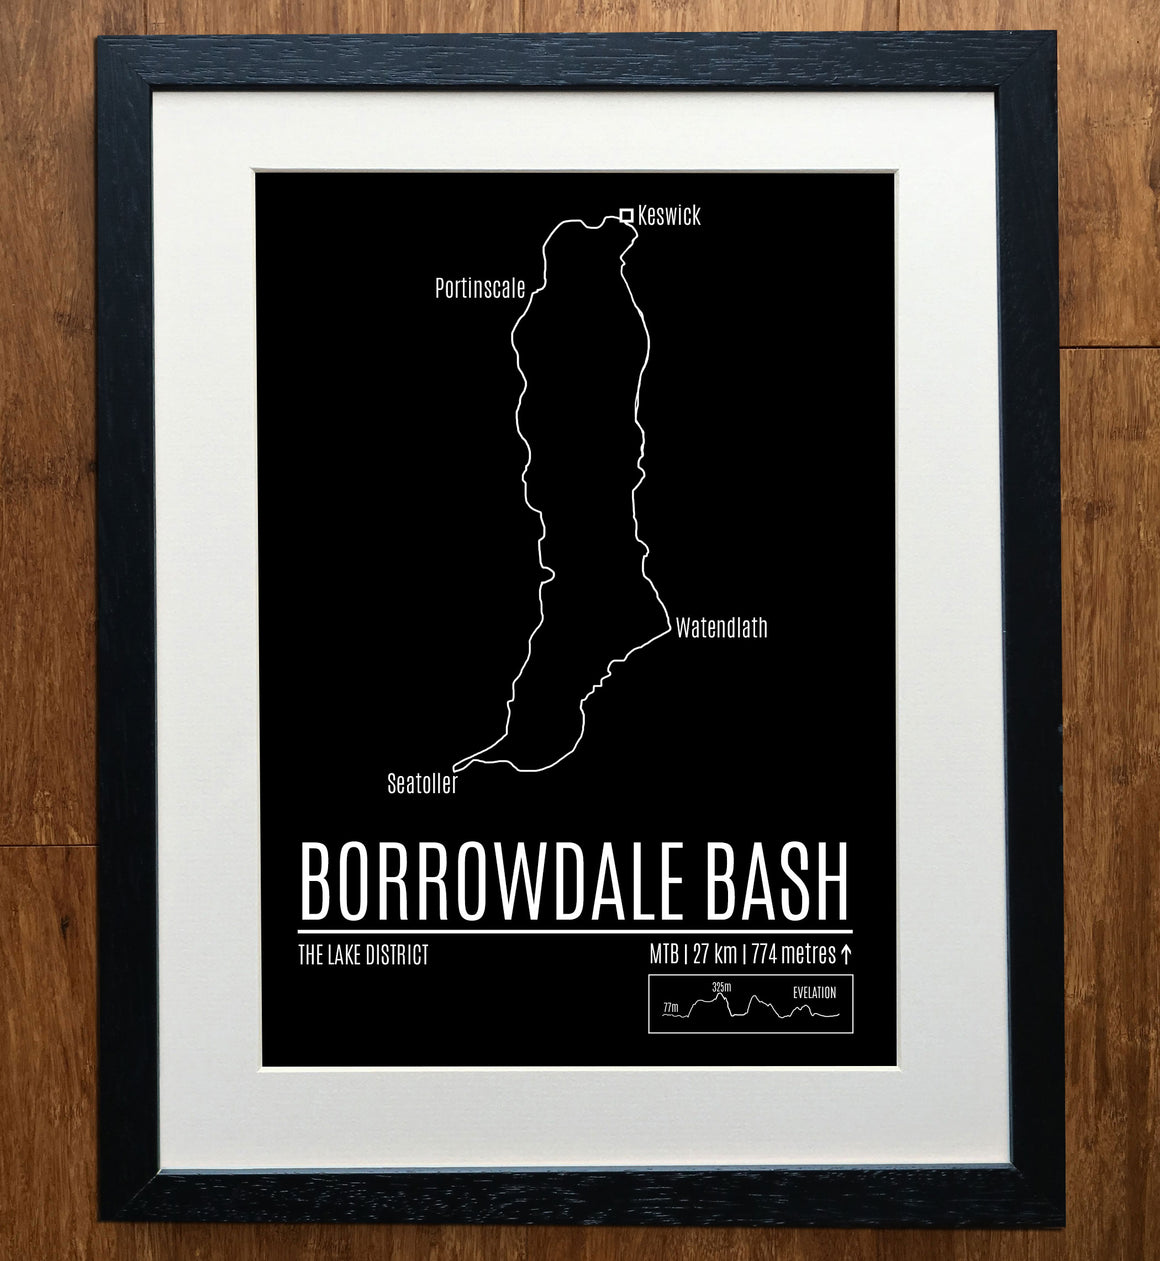 Borrowdale Bash Classic Mountain Bike Trail Print